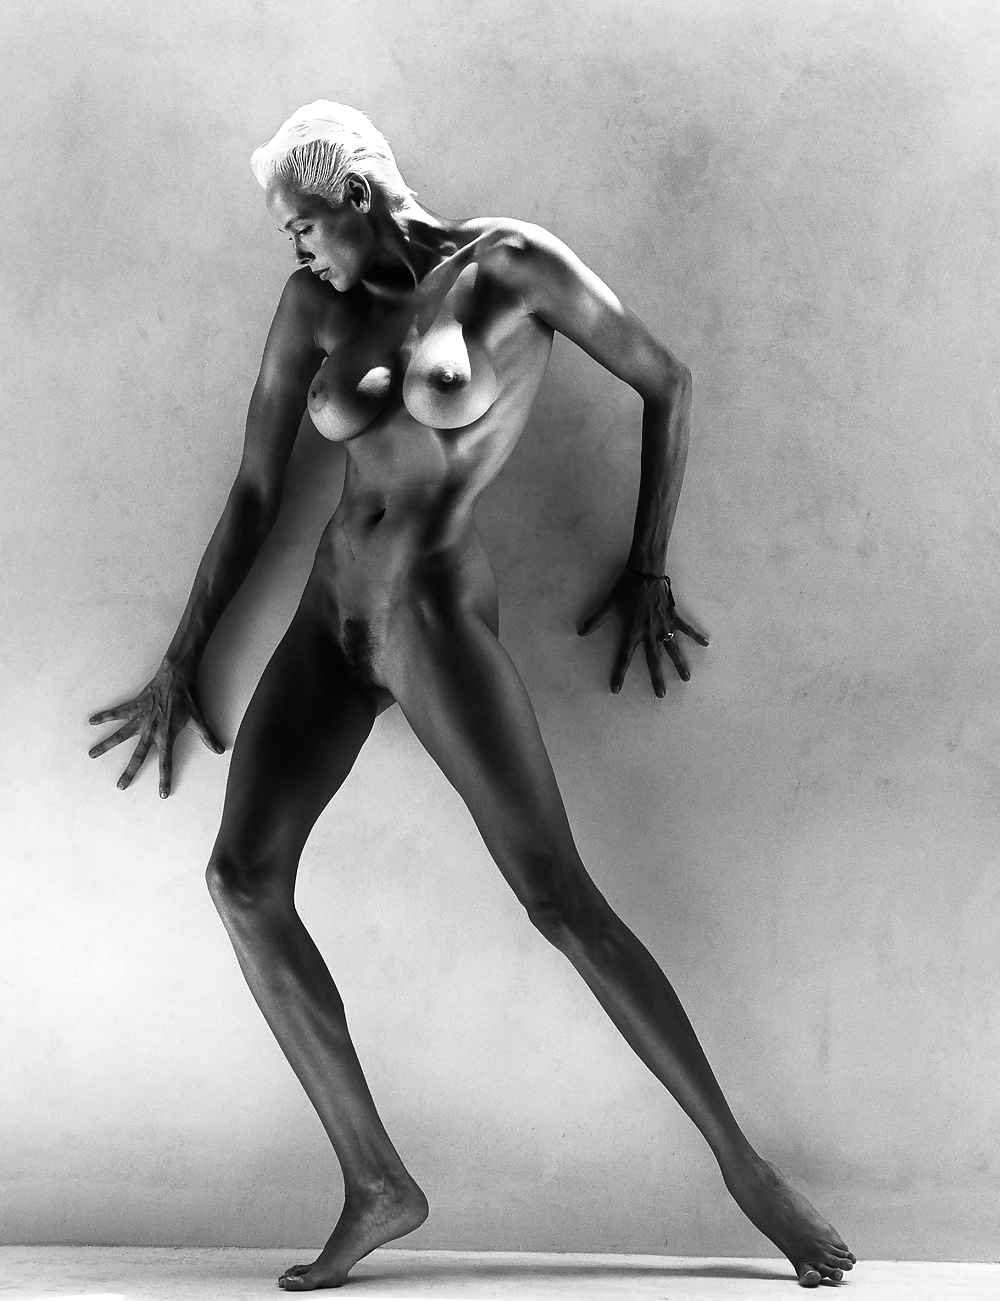 Sexy brigitte nielsen naked pics out after facial